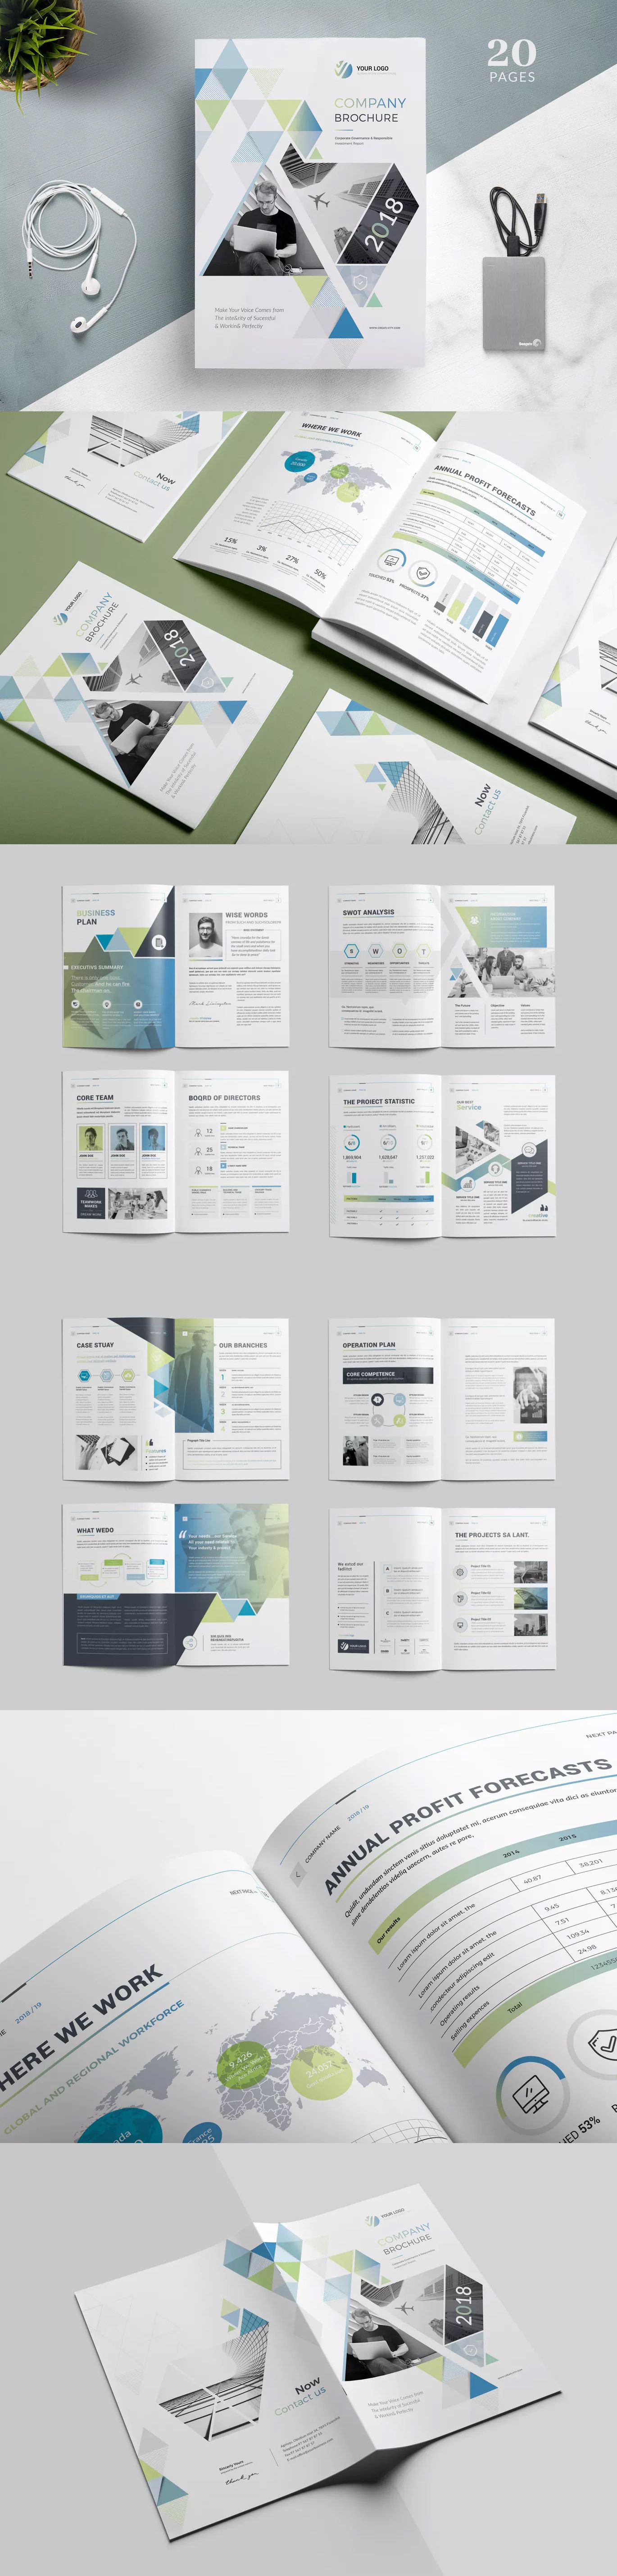 Company Brochure Template Indesign Indd 20 Pages Easy To